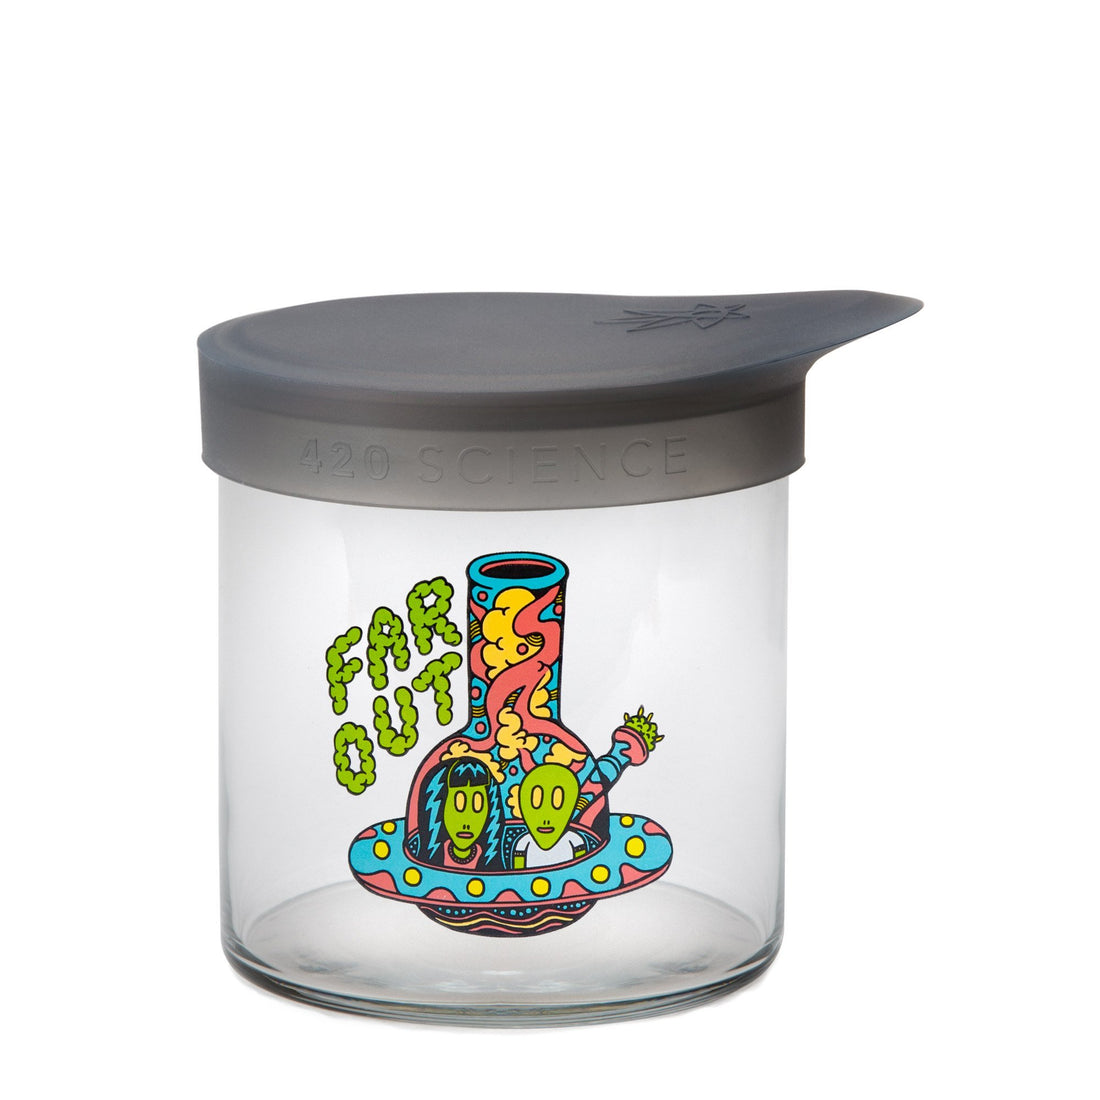 Medium Wide-Mouth - Far Out - 420 Science - The most trusted online smoke shop.